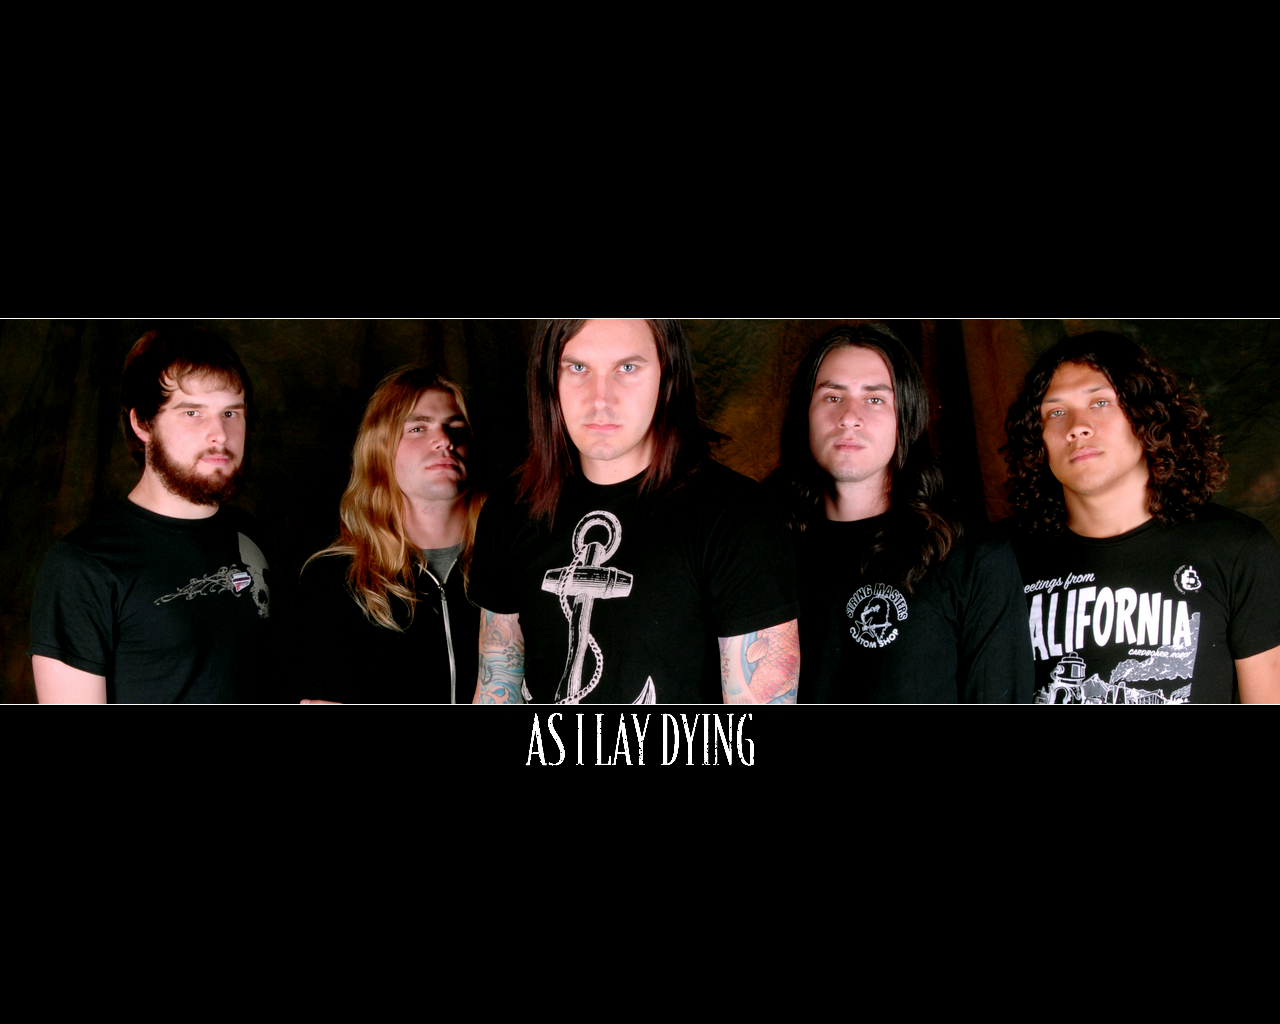 http://4.bp.blogspot.com/_yNzLprJRbCg/TGIGkKBb5oI/AAAAAAAAACY/8fnmURKHJ-Y/s1600/As_I_Lay_Dying_Wallpaper_by_Code2Master.png